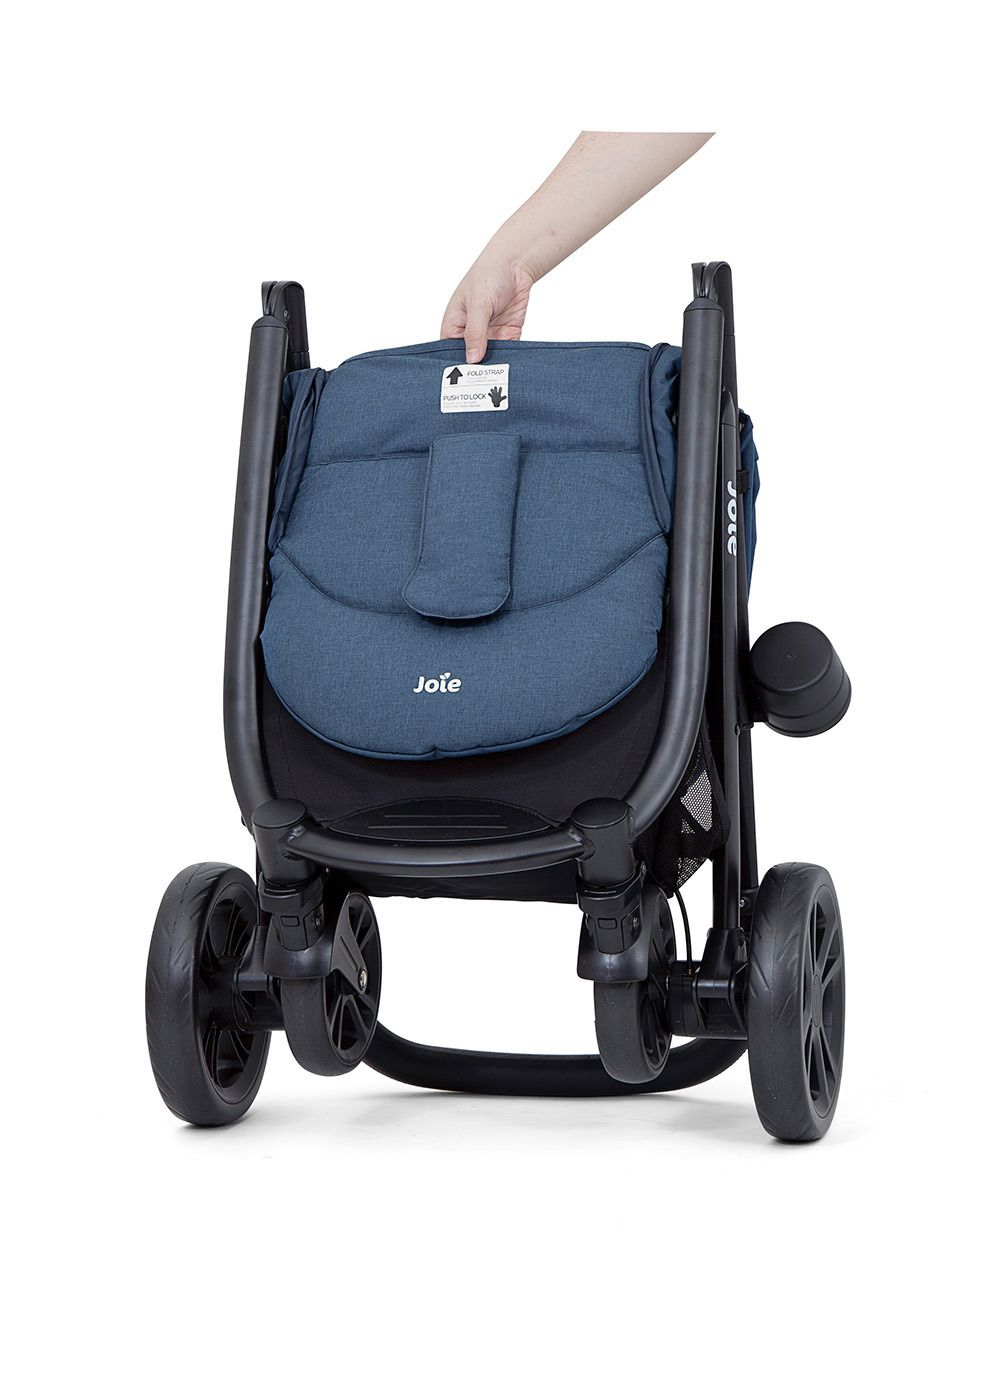 Joie Litetrax 4 DLX wózek spacerowy do 22 kg